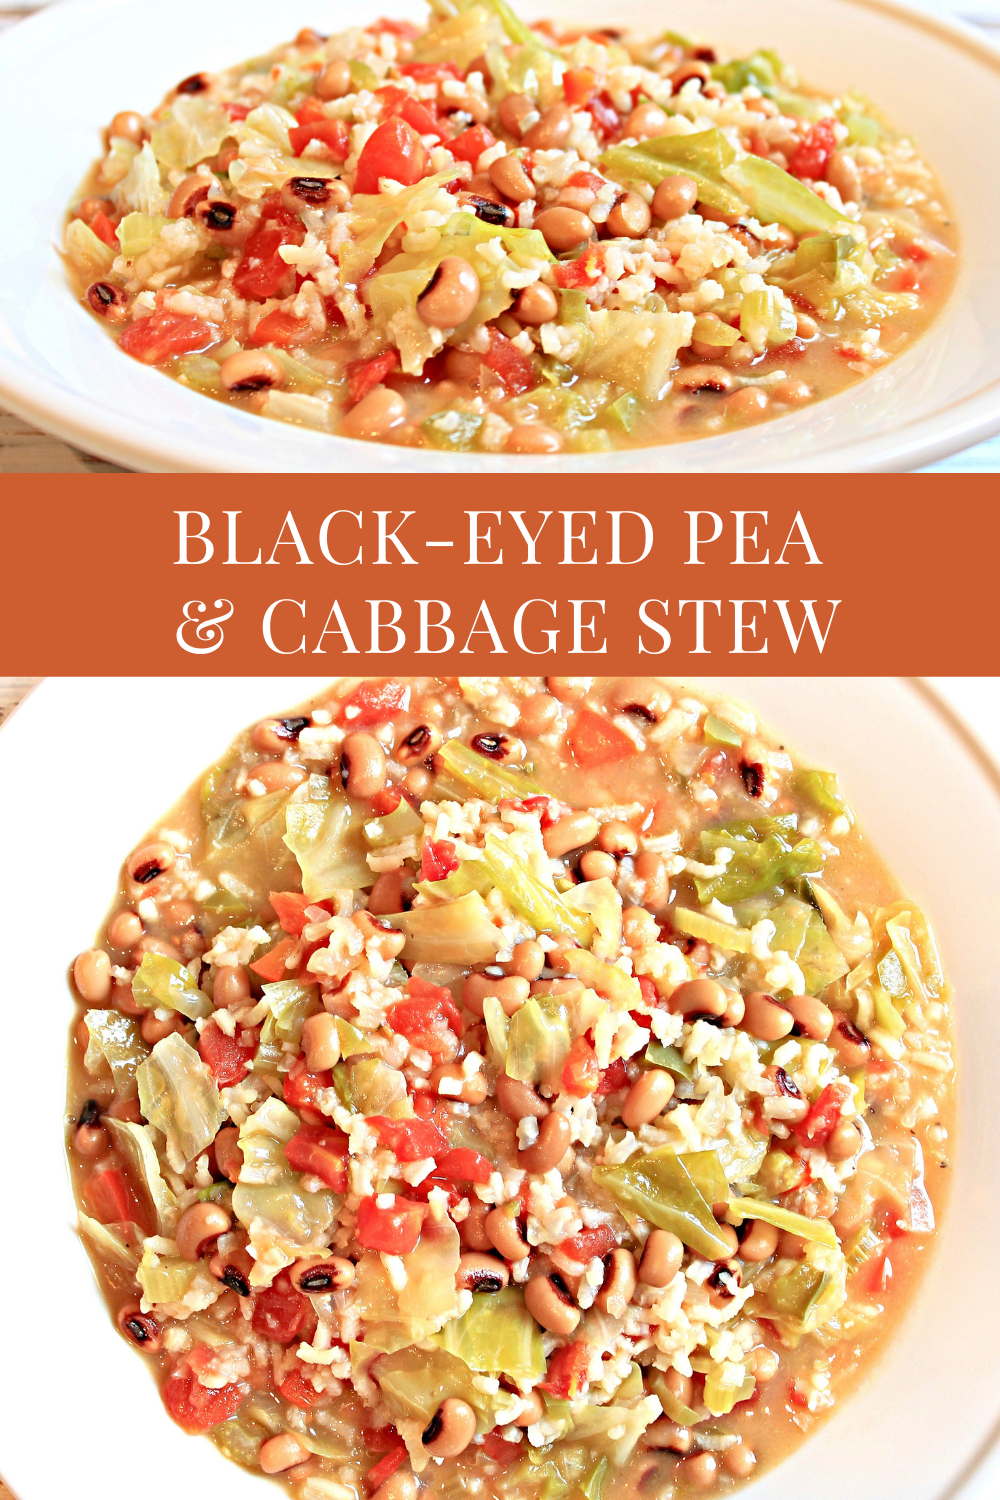 Black-Eyed Pea and Cabbage Stew -Kick off the new year with hearty and healthy vegan black-eyed pea and cabbage stew loaded with good-for-you ingredients! via @thiswifecooks